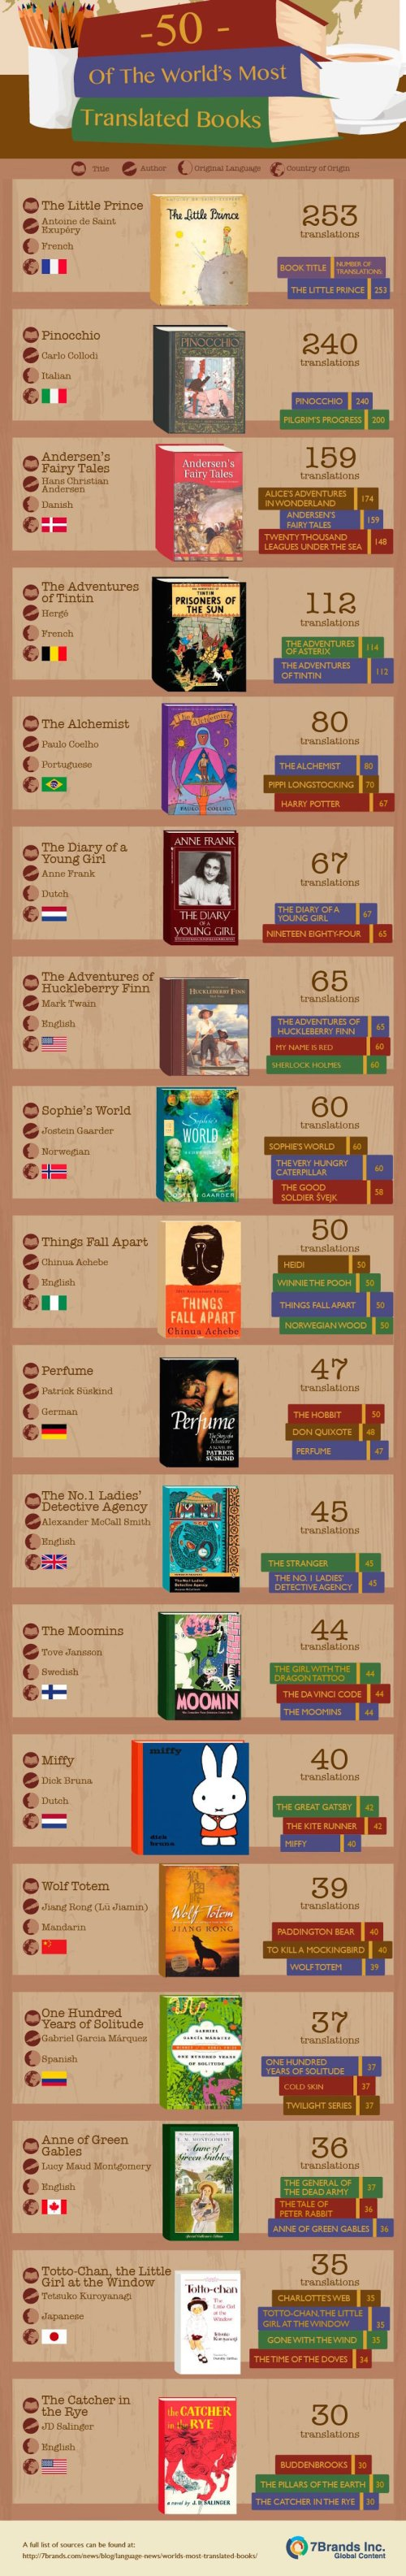 Most-translated-books-in-the-world-infographic